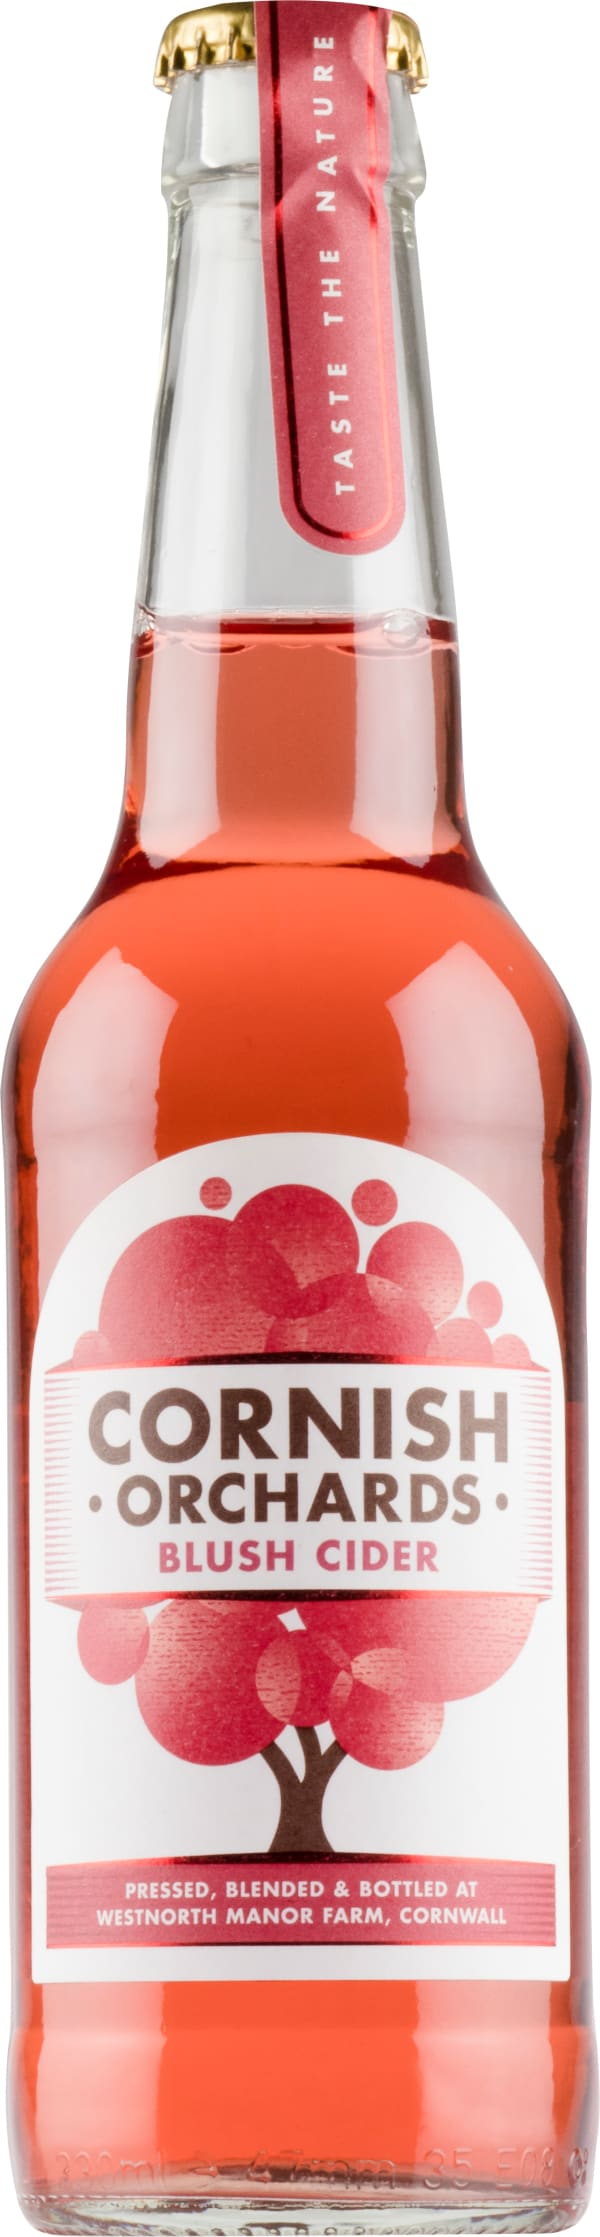 Cornish Orchard Blush